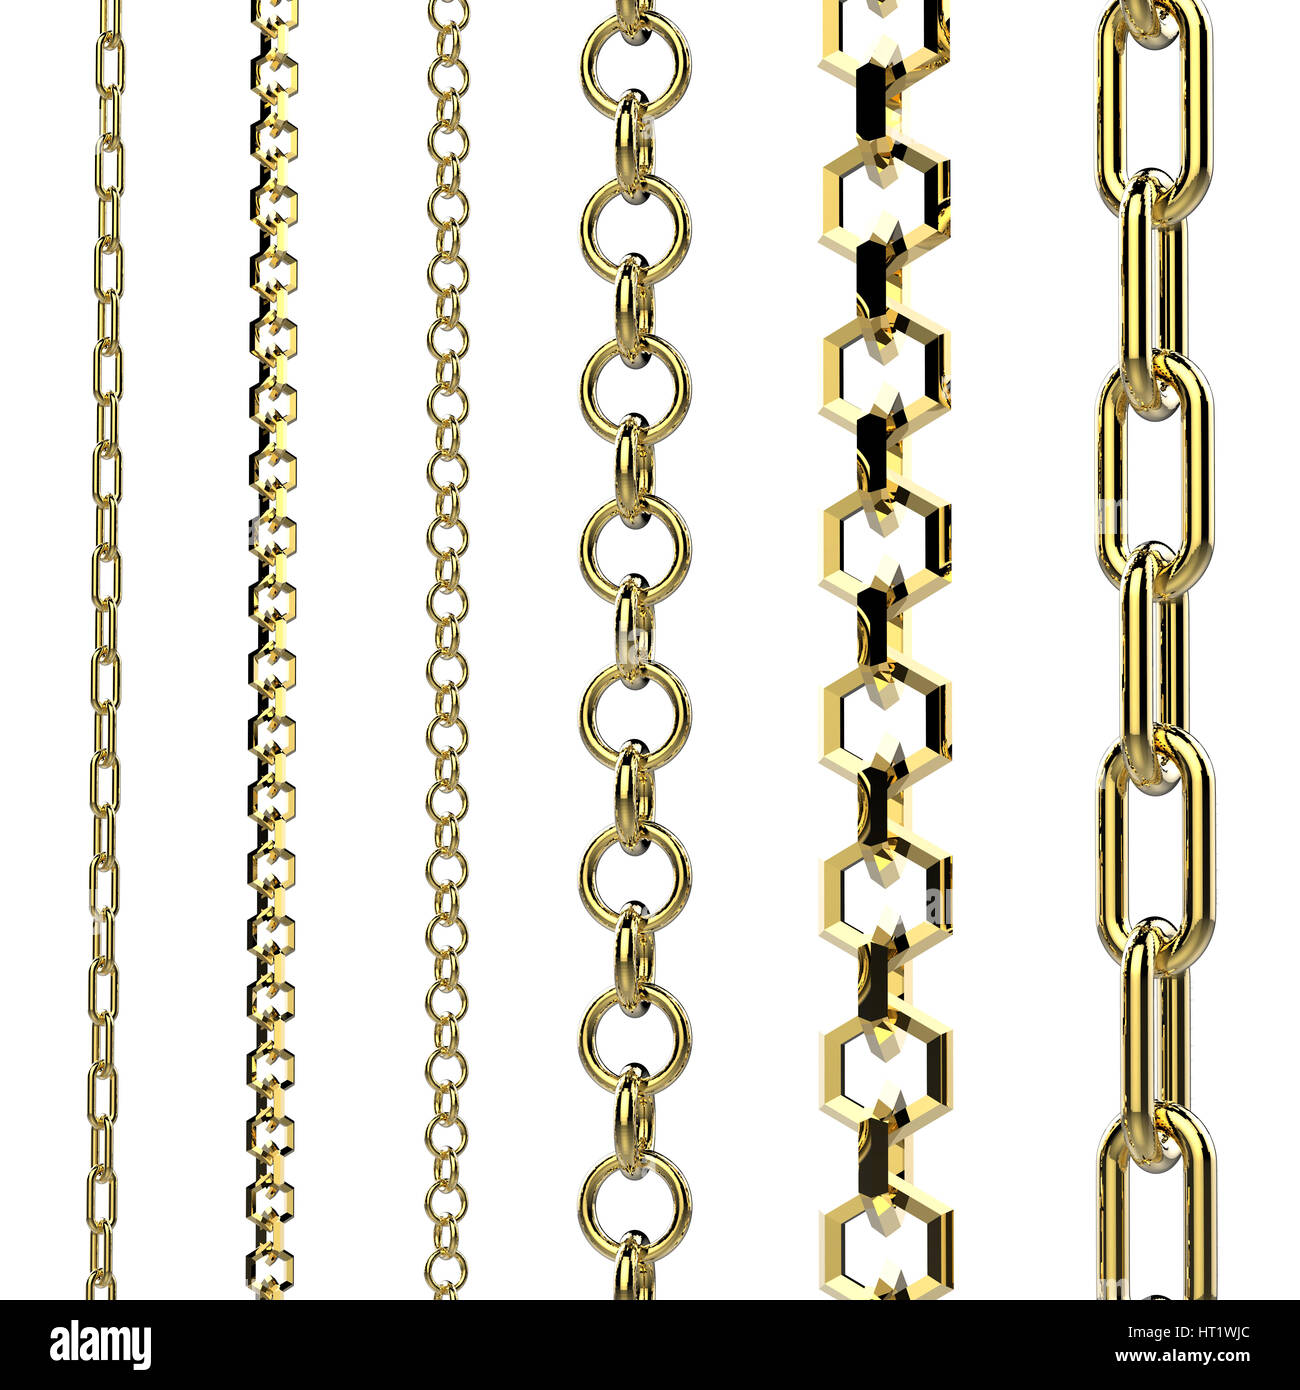 shop with jewelleries fancy chain chains jewellersparmar golden gift small in parmar pune pendant gold jewellers guntons mangalsutra mangalsutras jewellery